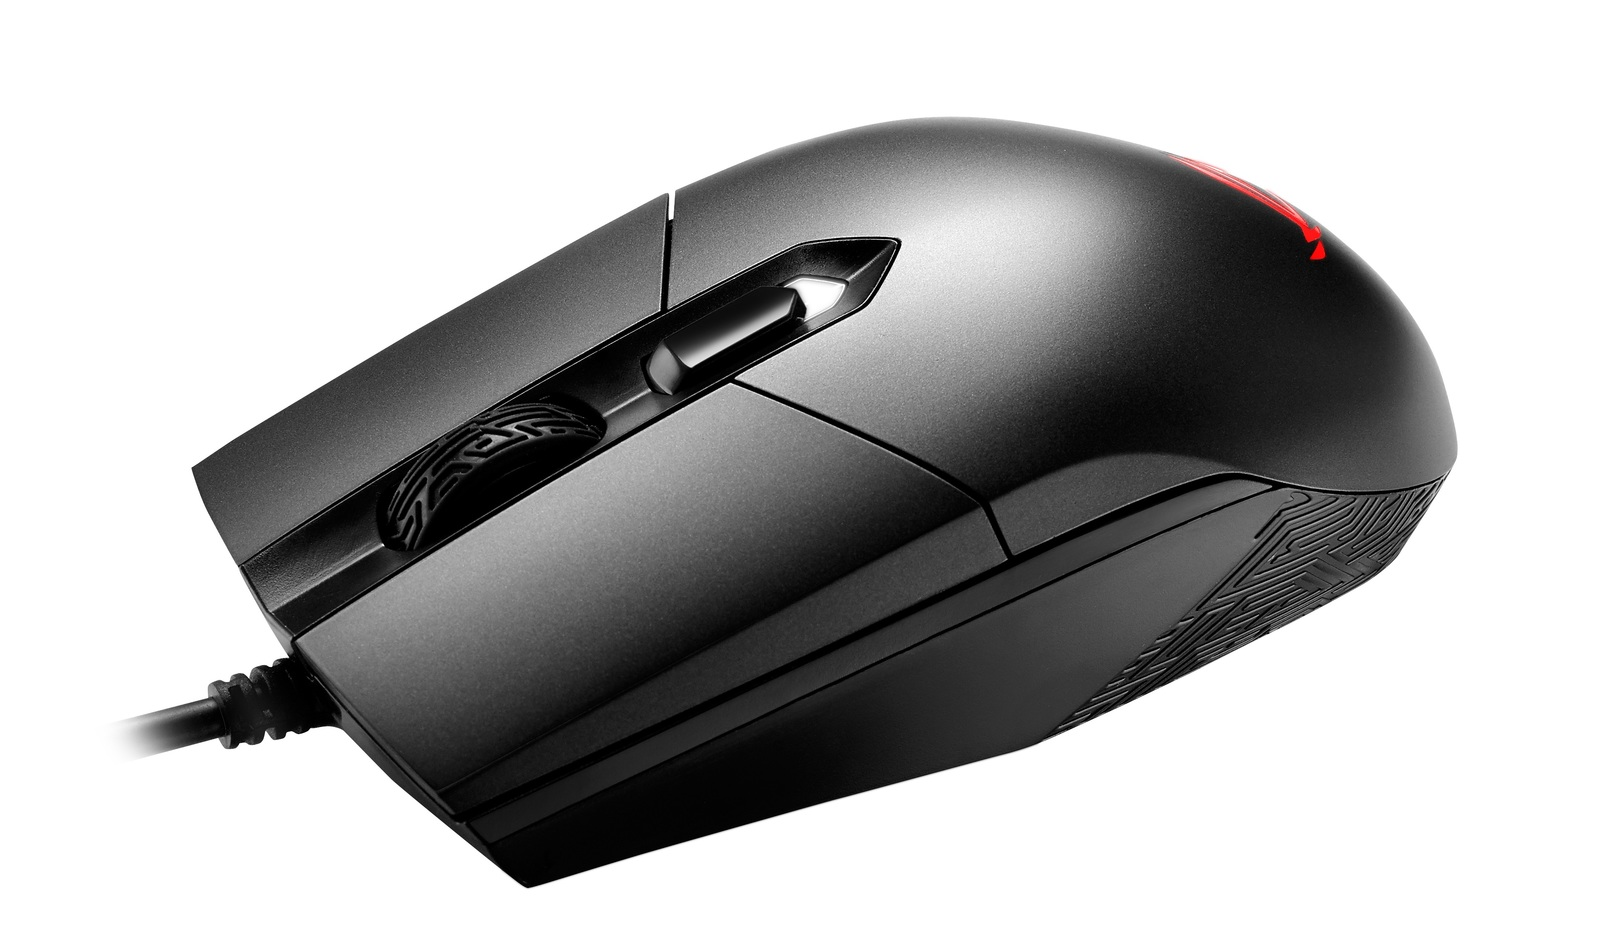 ASUS ROG Strix Impact Wired Gaming Mouse for PC Games image